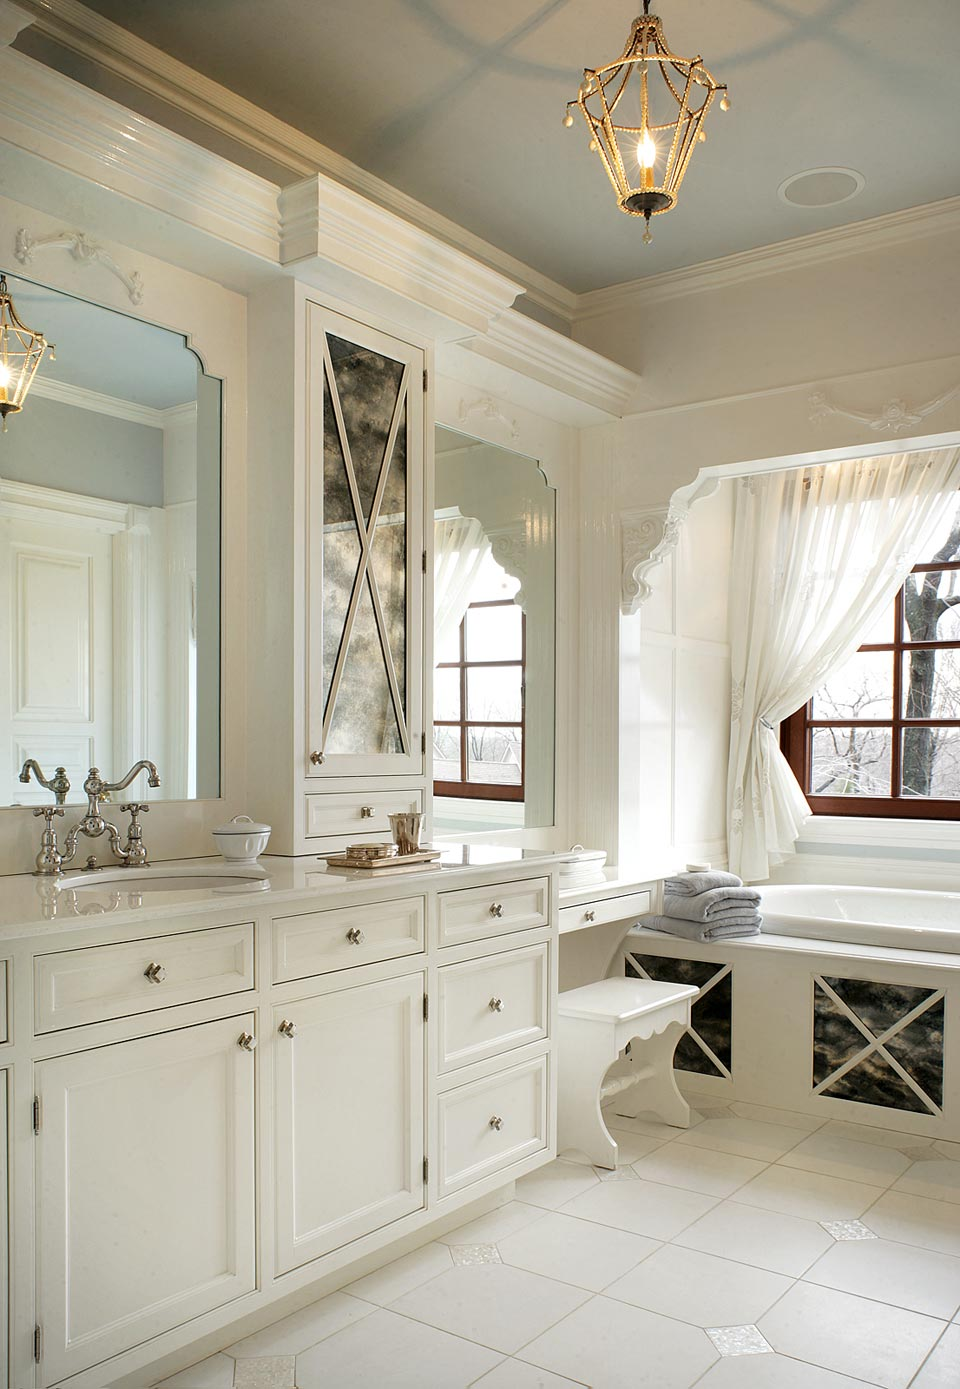 11 Awesome Traditional Bathroom Designs - Awesome 11 on Bathroom Ideas Photo Gallery  id=54901